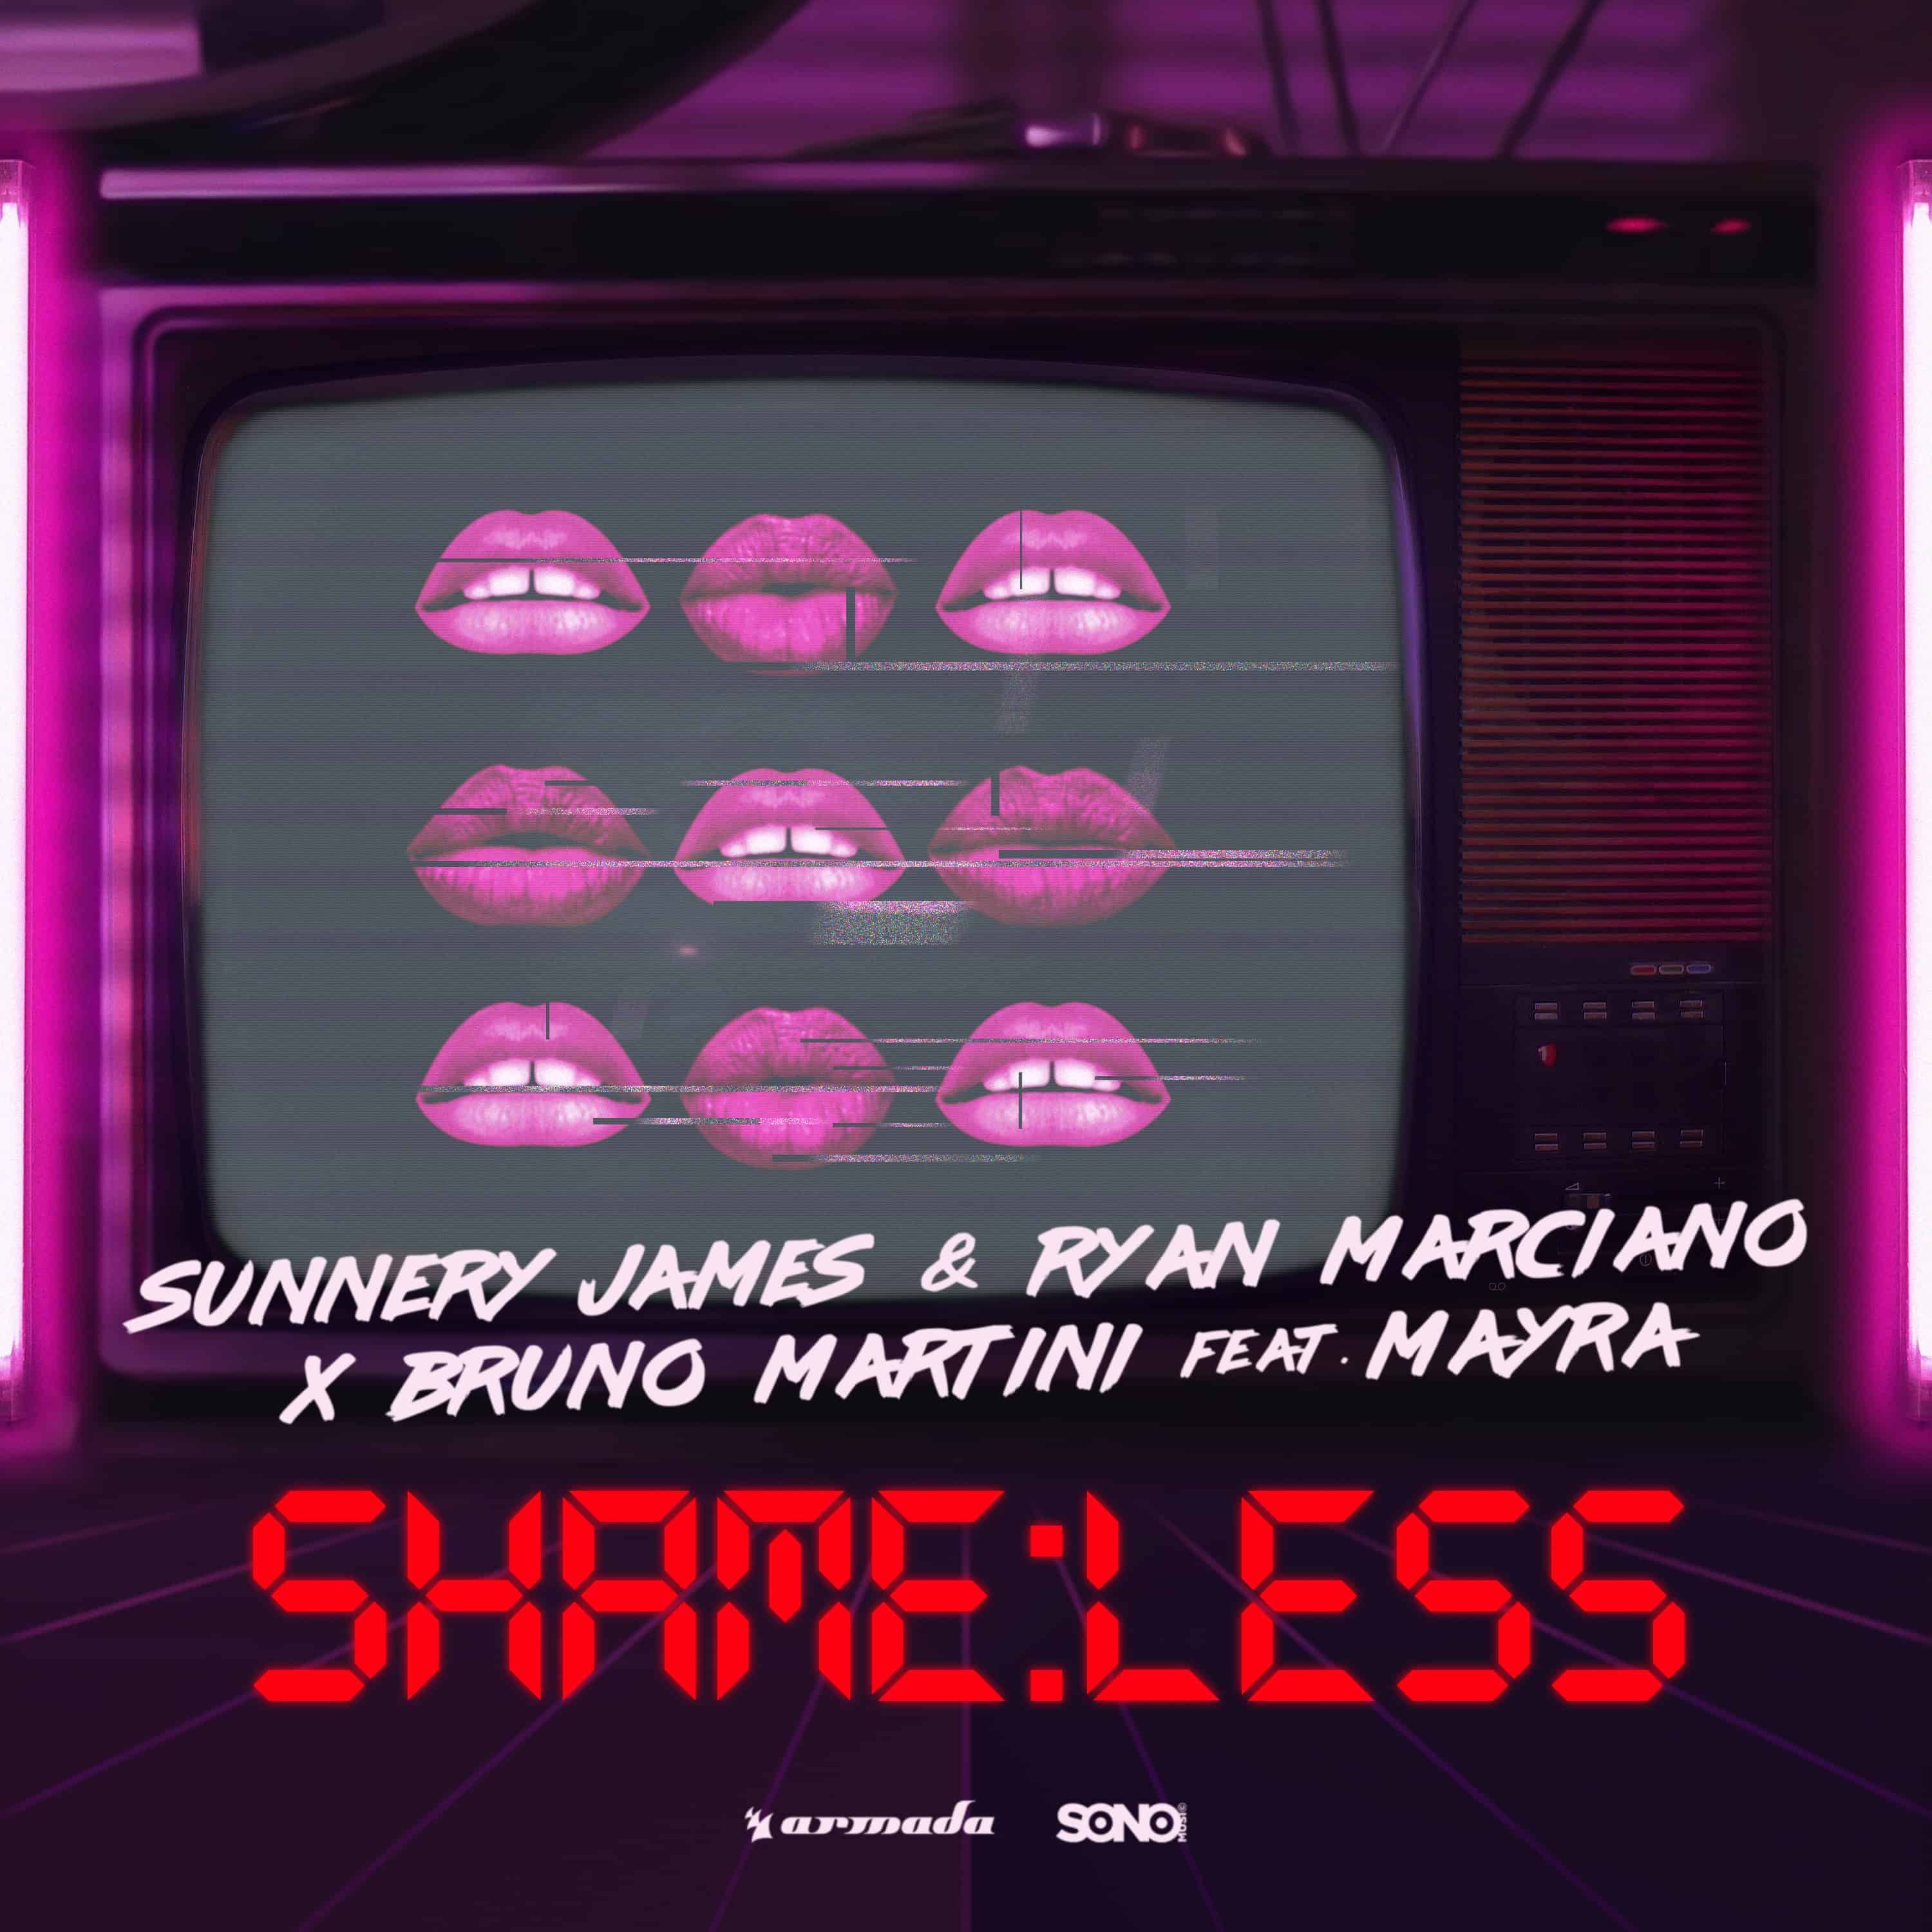 Sunnery James & Ryan Marciano and Bruno Martini new song: Shameless